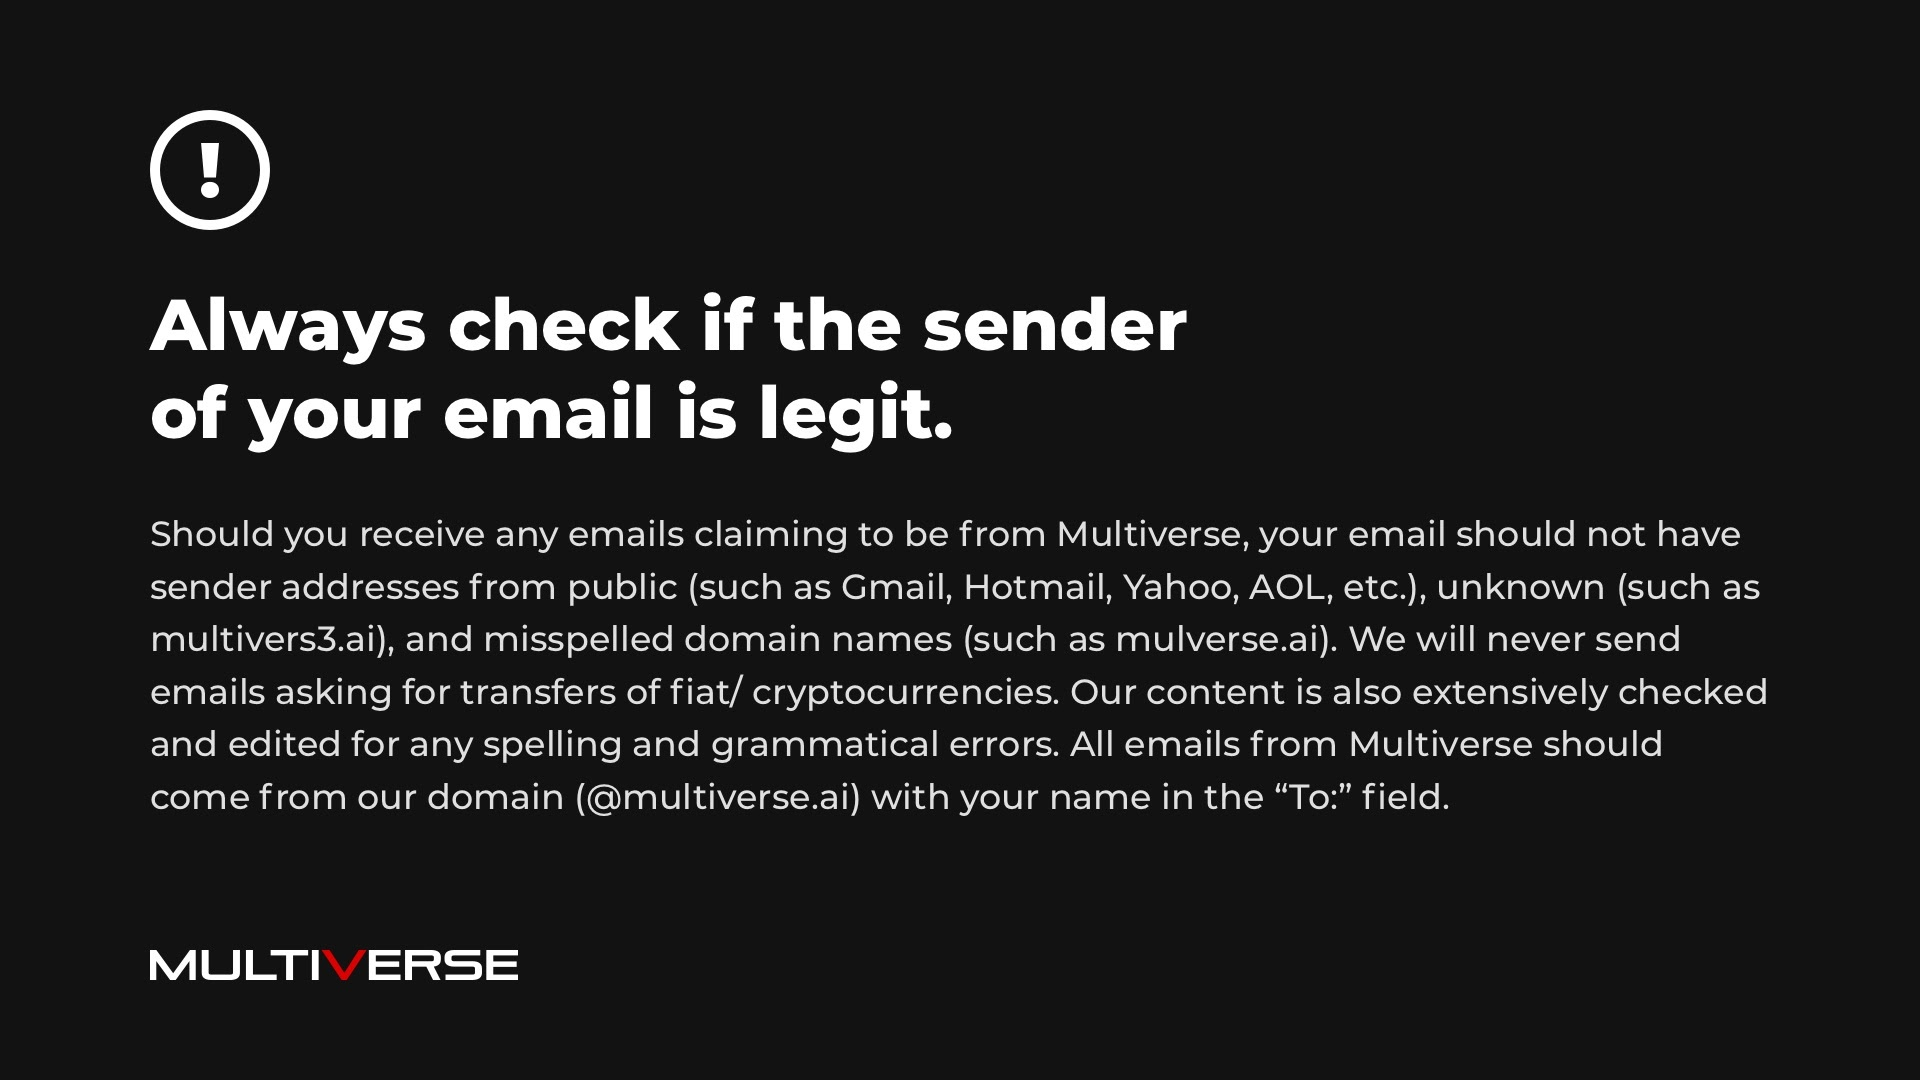 Security reminder graphic against suspicious emails with MultiverseAI logo